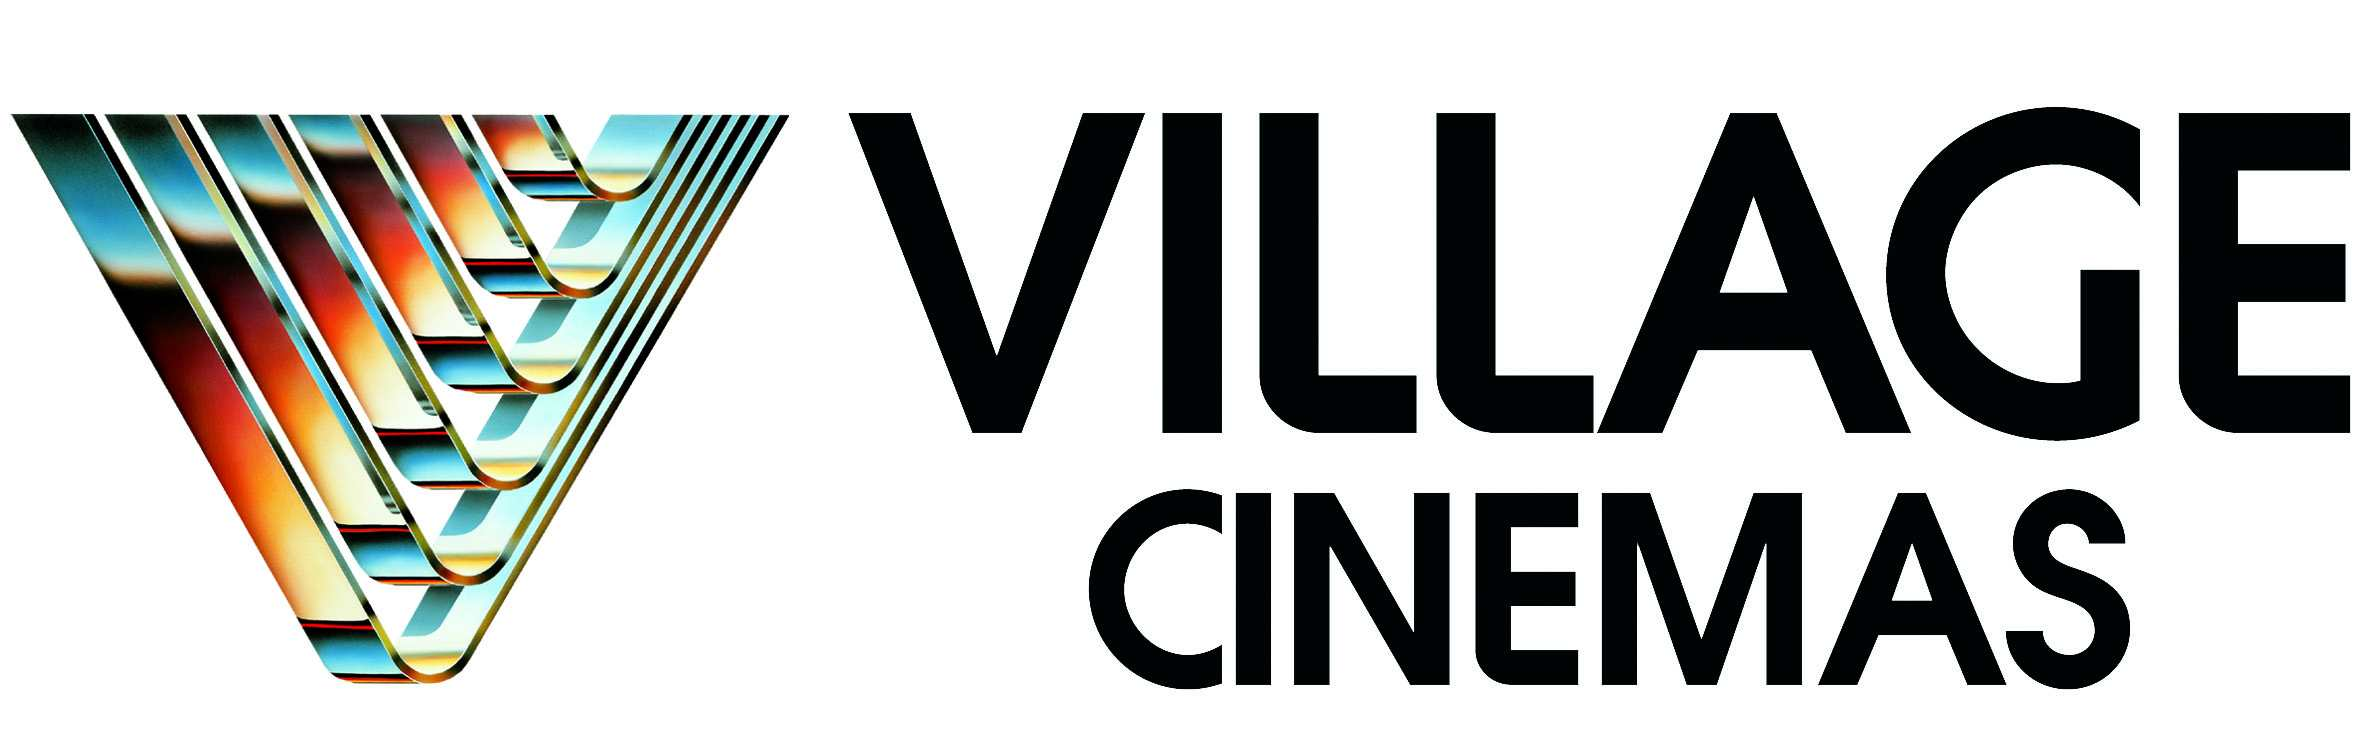 Village Cinemas Cleaning Services  58387f4aad9